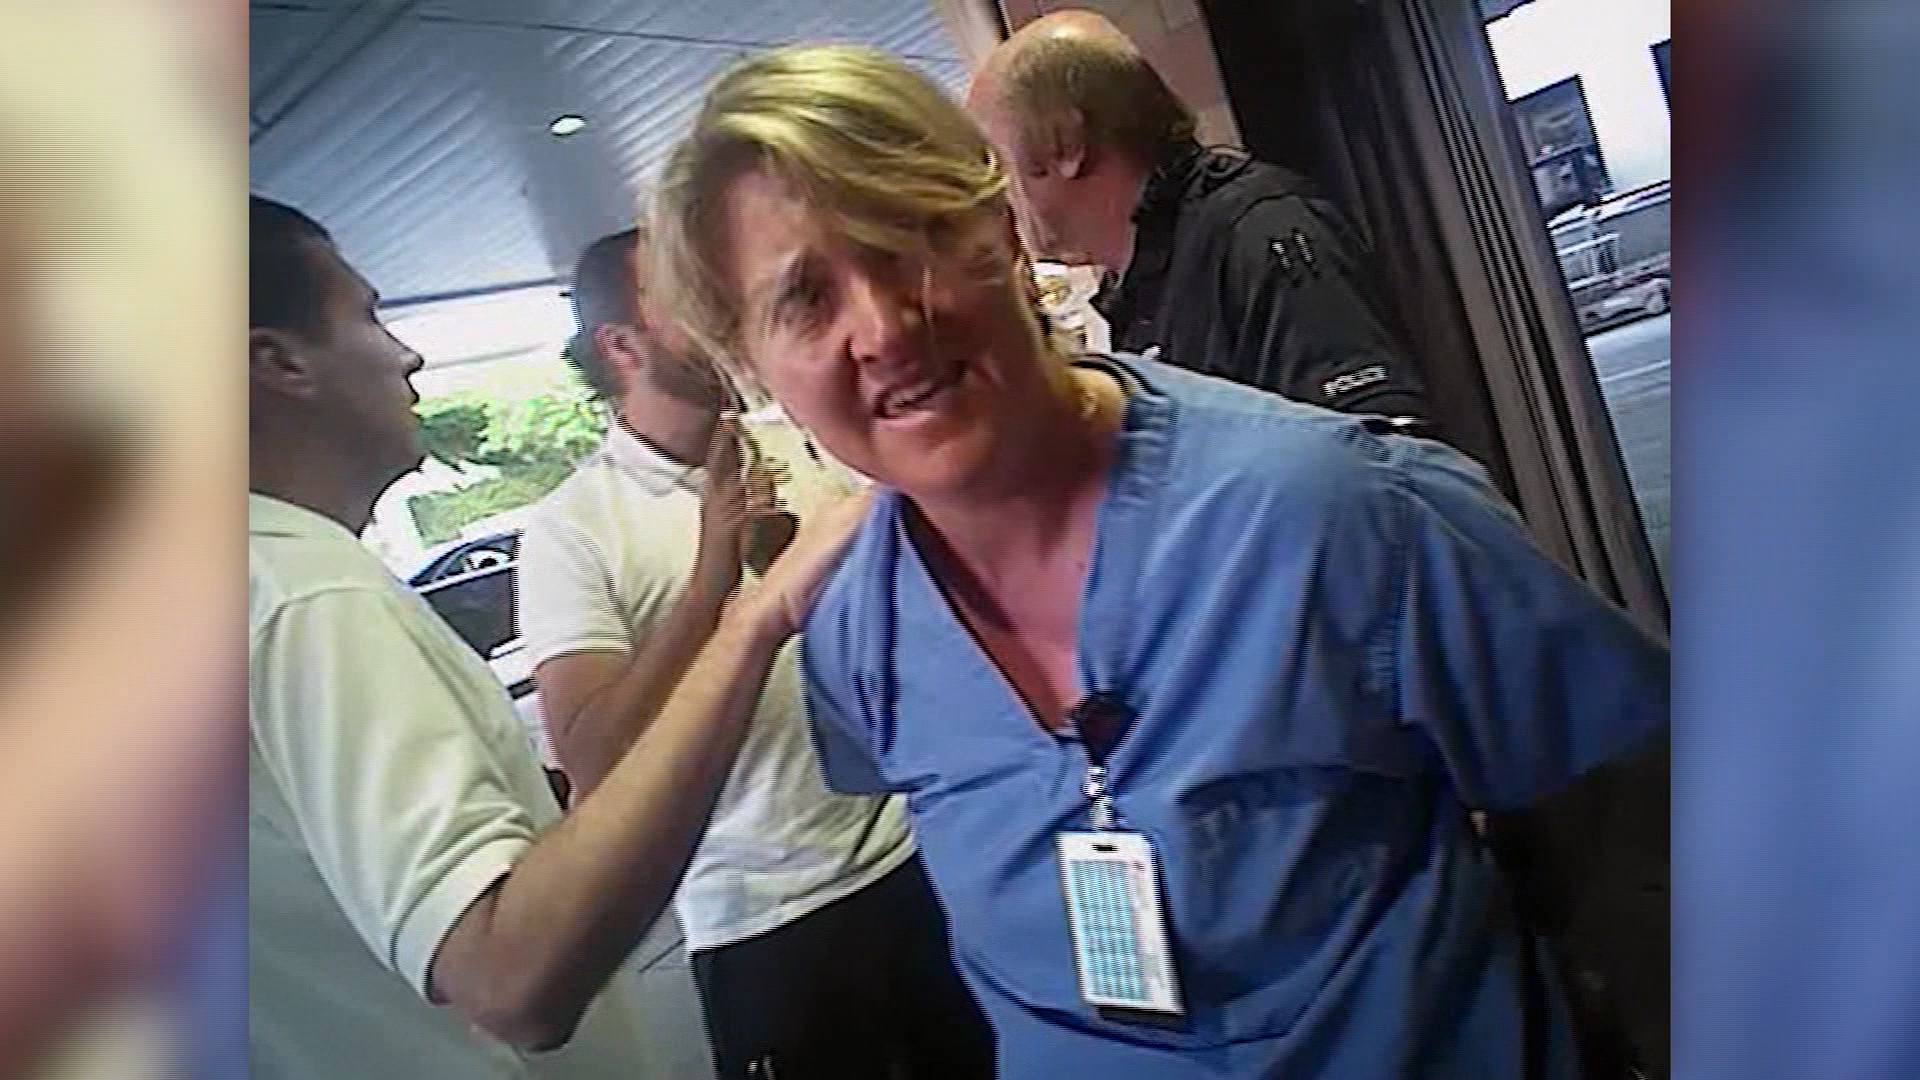 Body camera of Utah nurse arrest-159532.jpg49832792